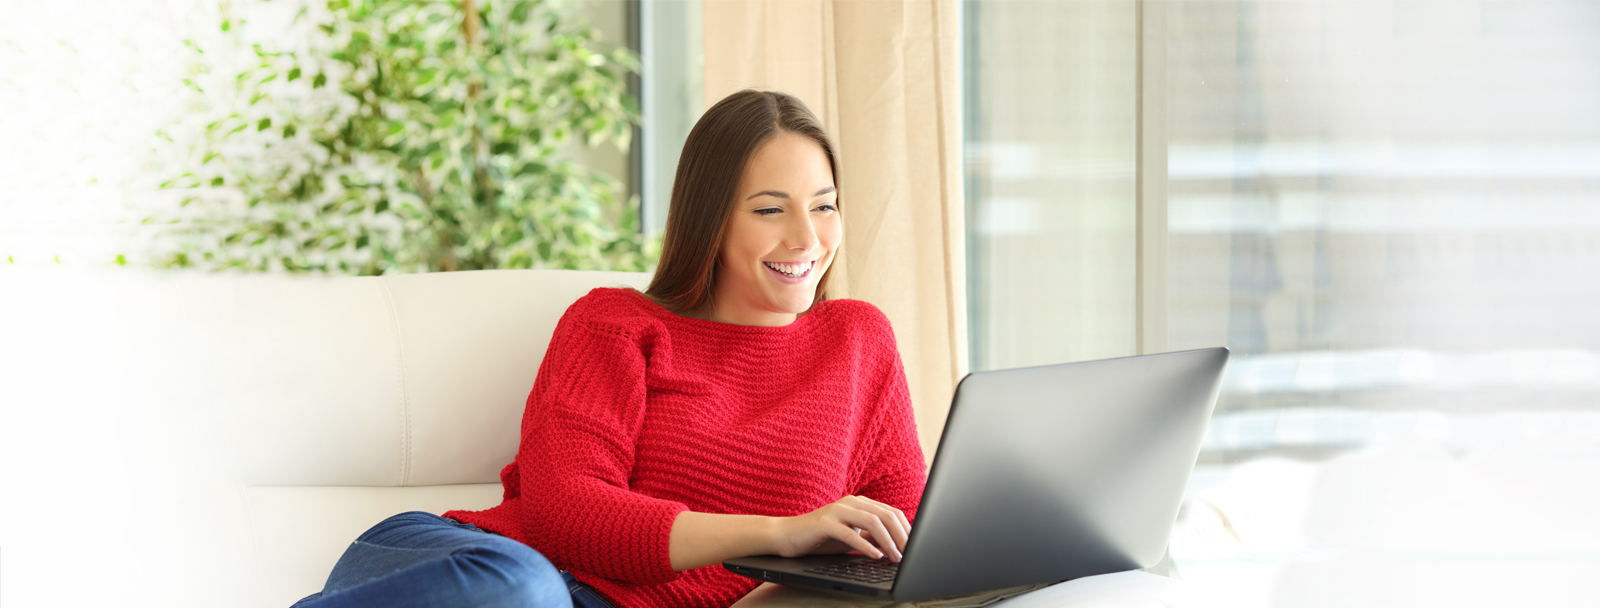 Girl in red sweater on laptop extended